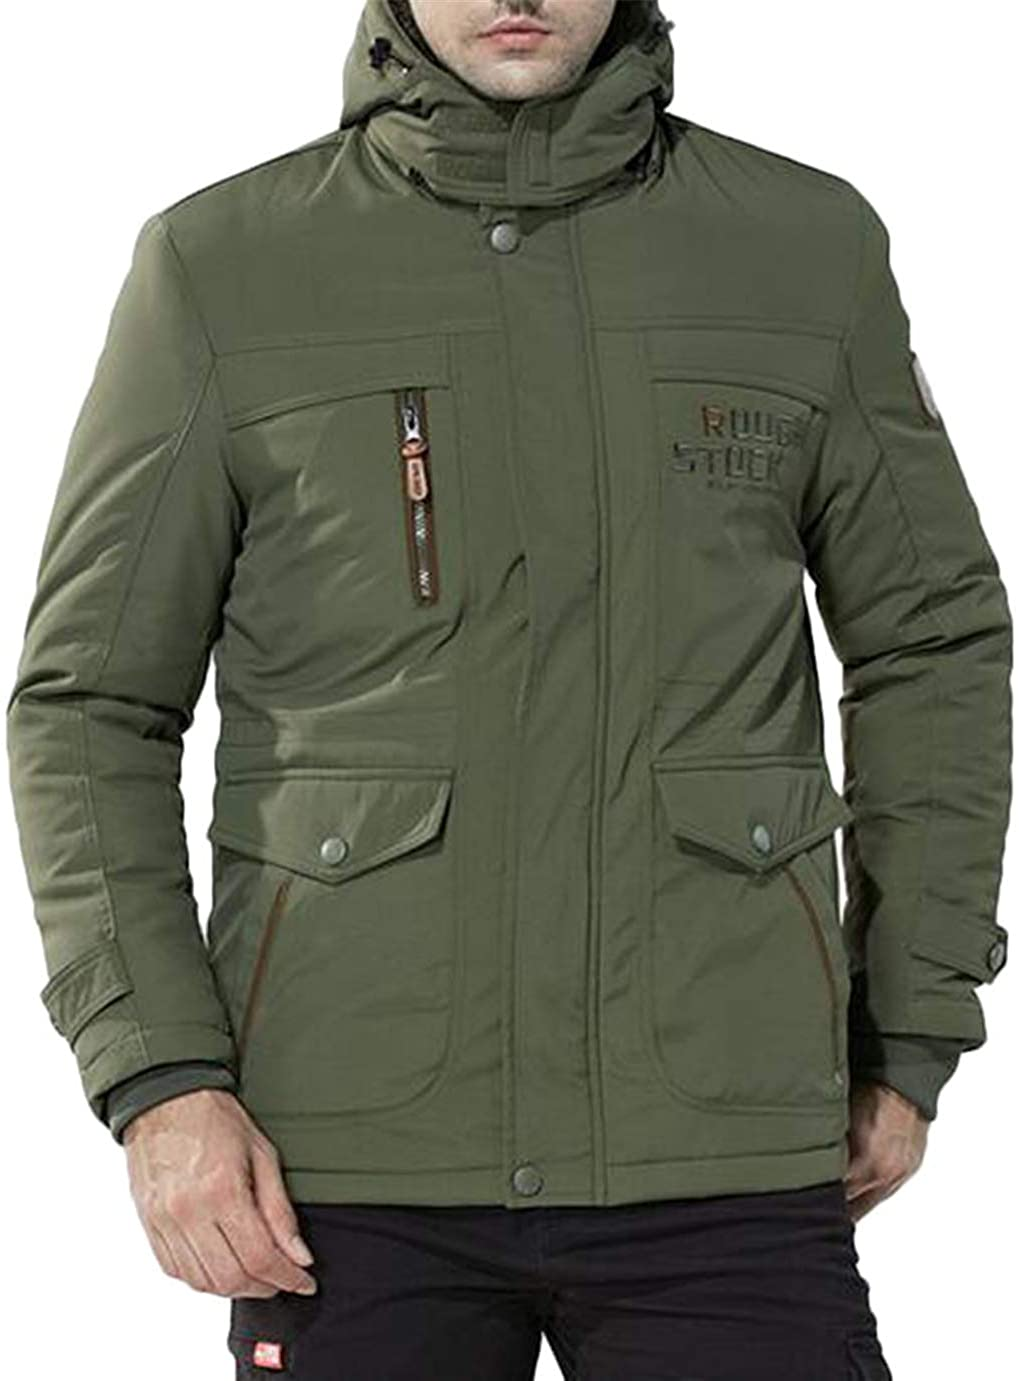 Hmarkt Mens Winter Thicken Military Removable Hooded Fleece Lined Down Puffer Jacket Army Green XL